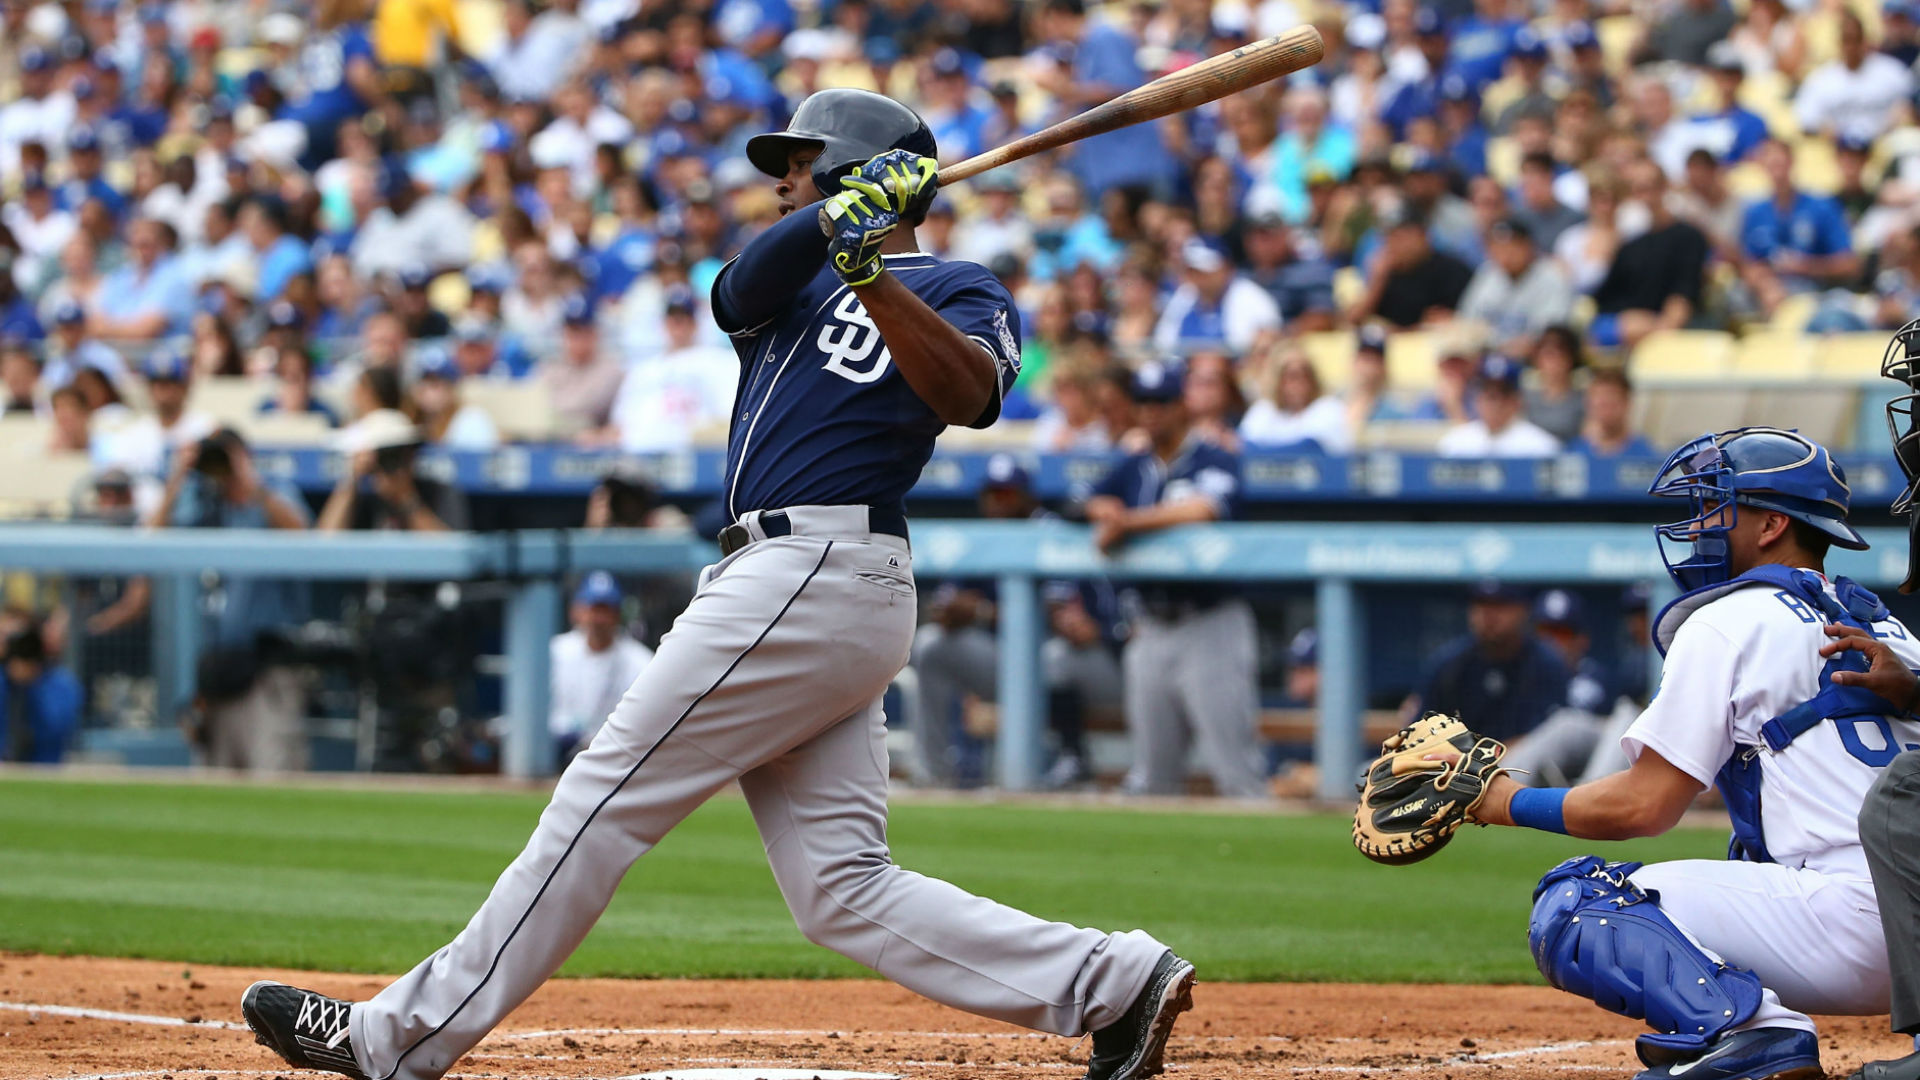 MLB Nightly 9: Padres roll as Justin Upton bashes grand slam, drives in six runs